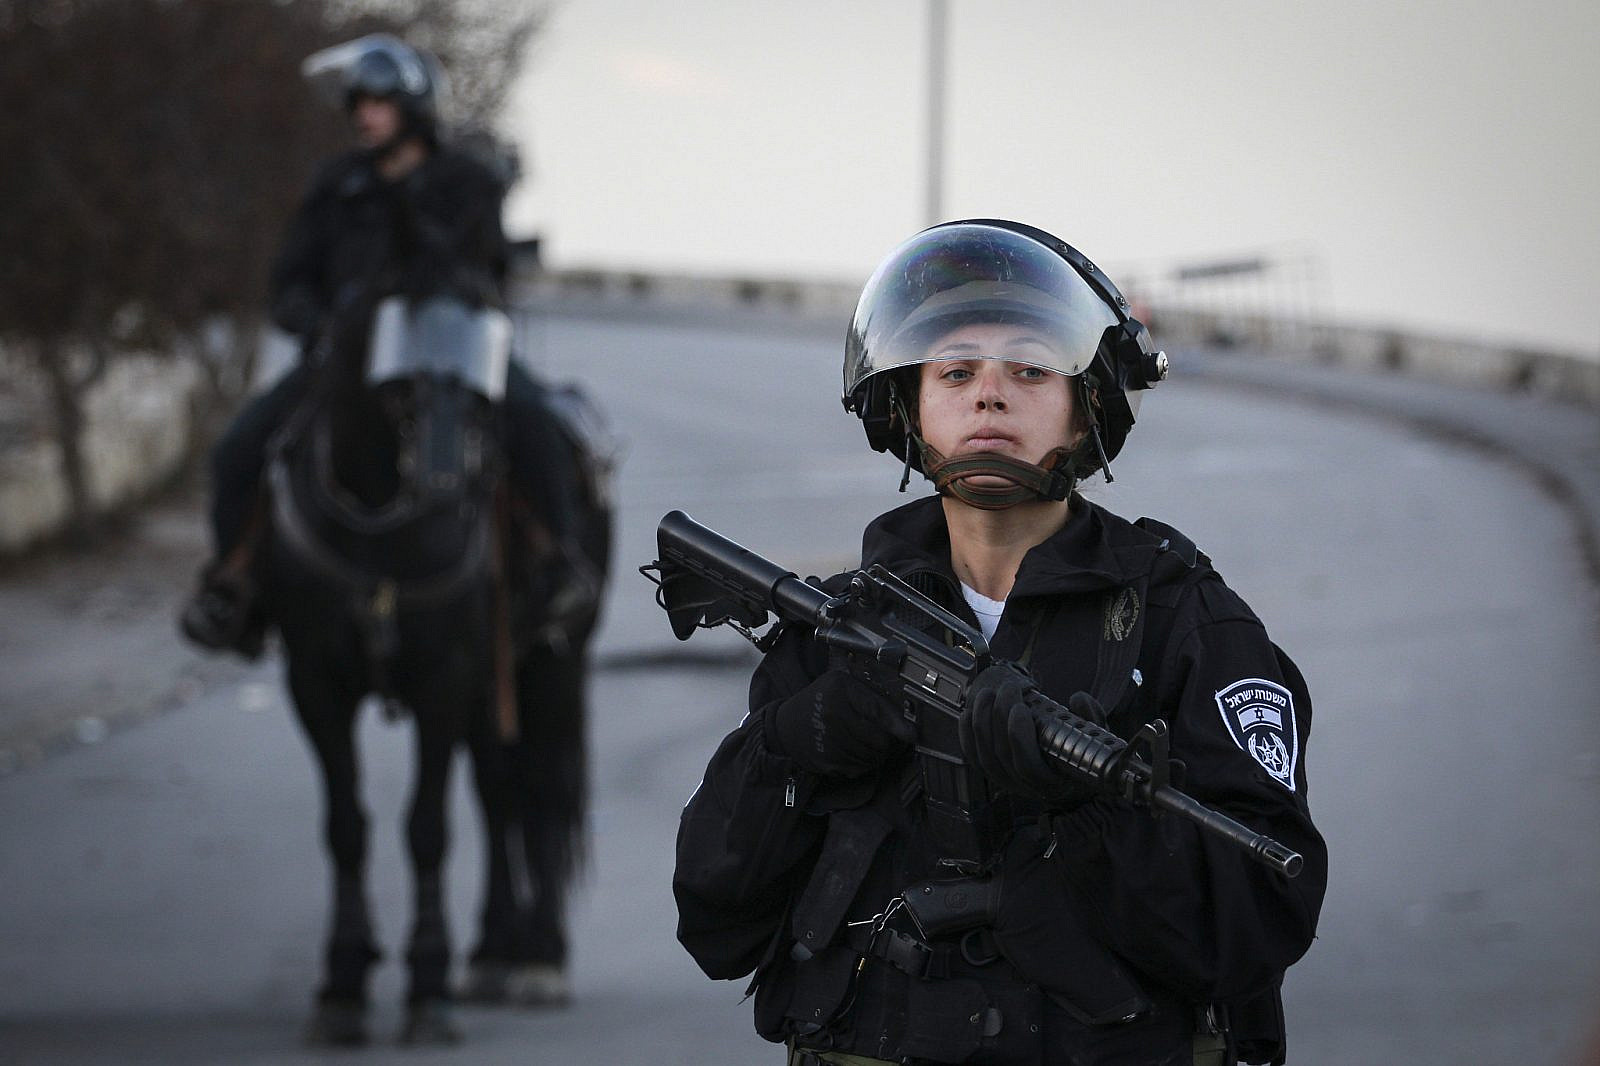 An Israeli Border Policewoman stands guard during a demonstration in Issawiya, East Jerusalem, against the new cement blockades at the entrances to Issawiya, on November 12, 2014. (Hadas Parush/Flash90)